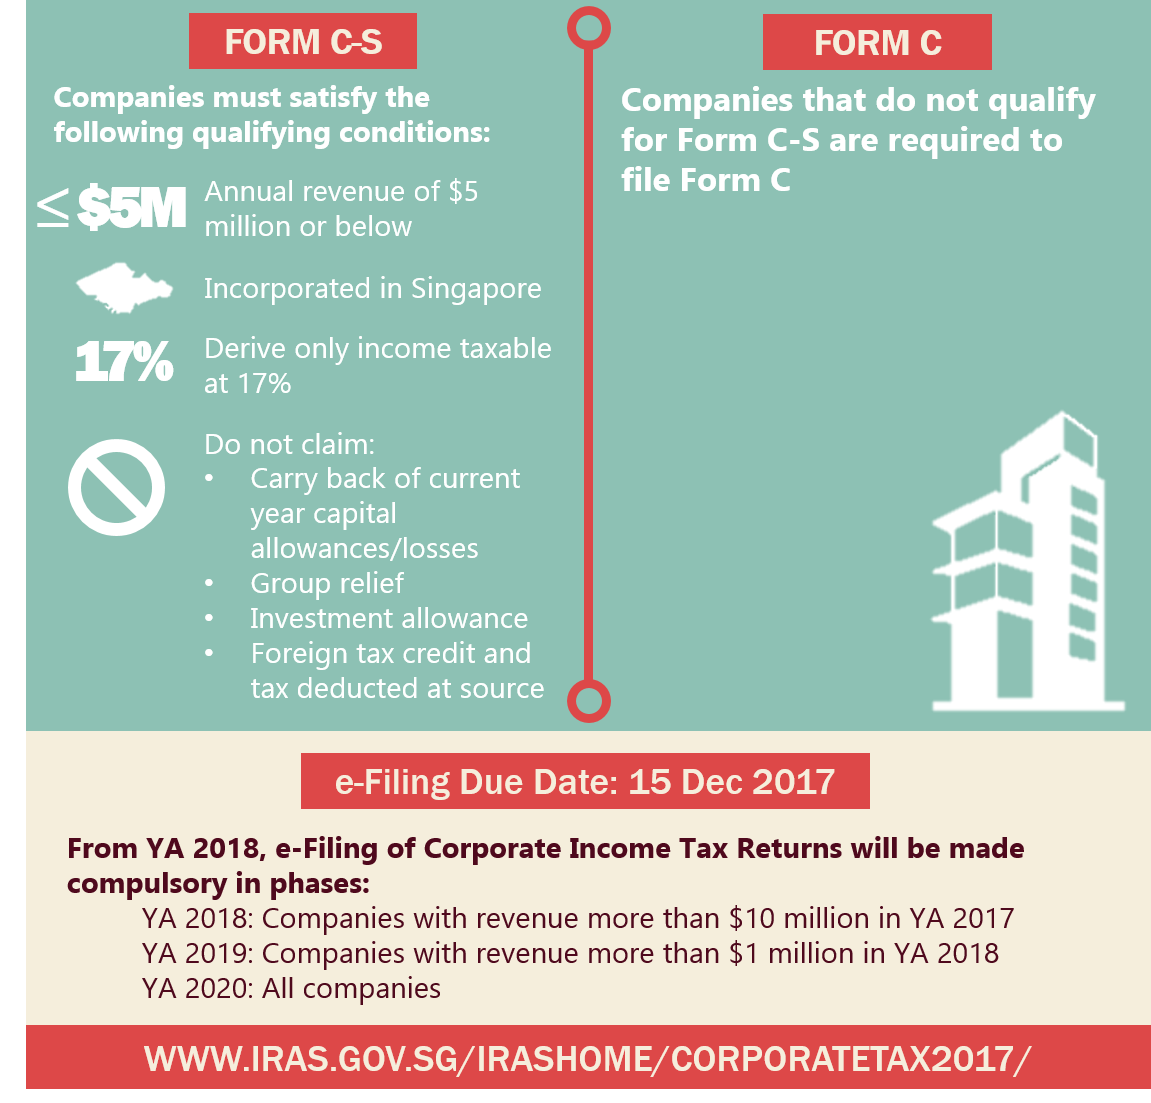 Form C-S vs Form C